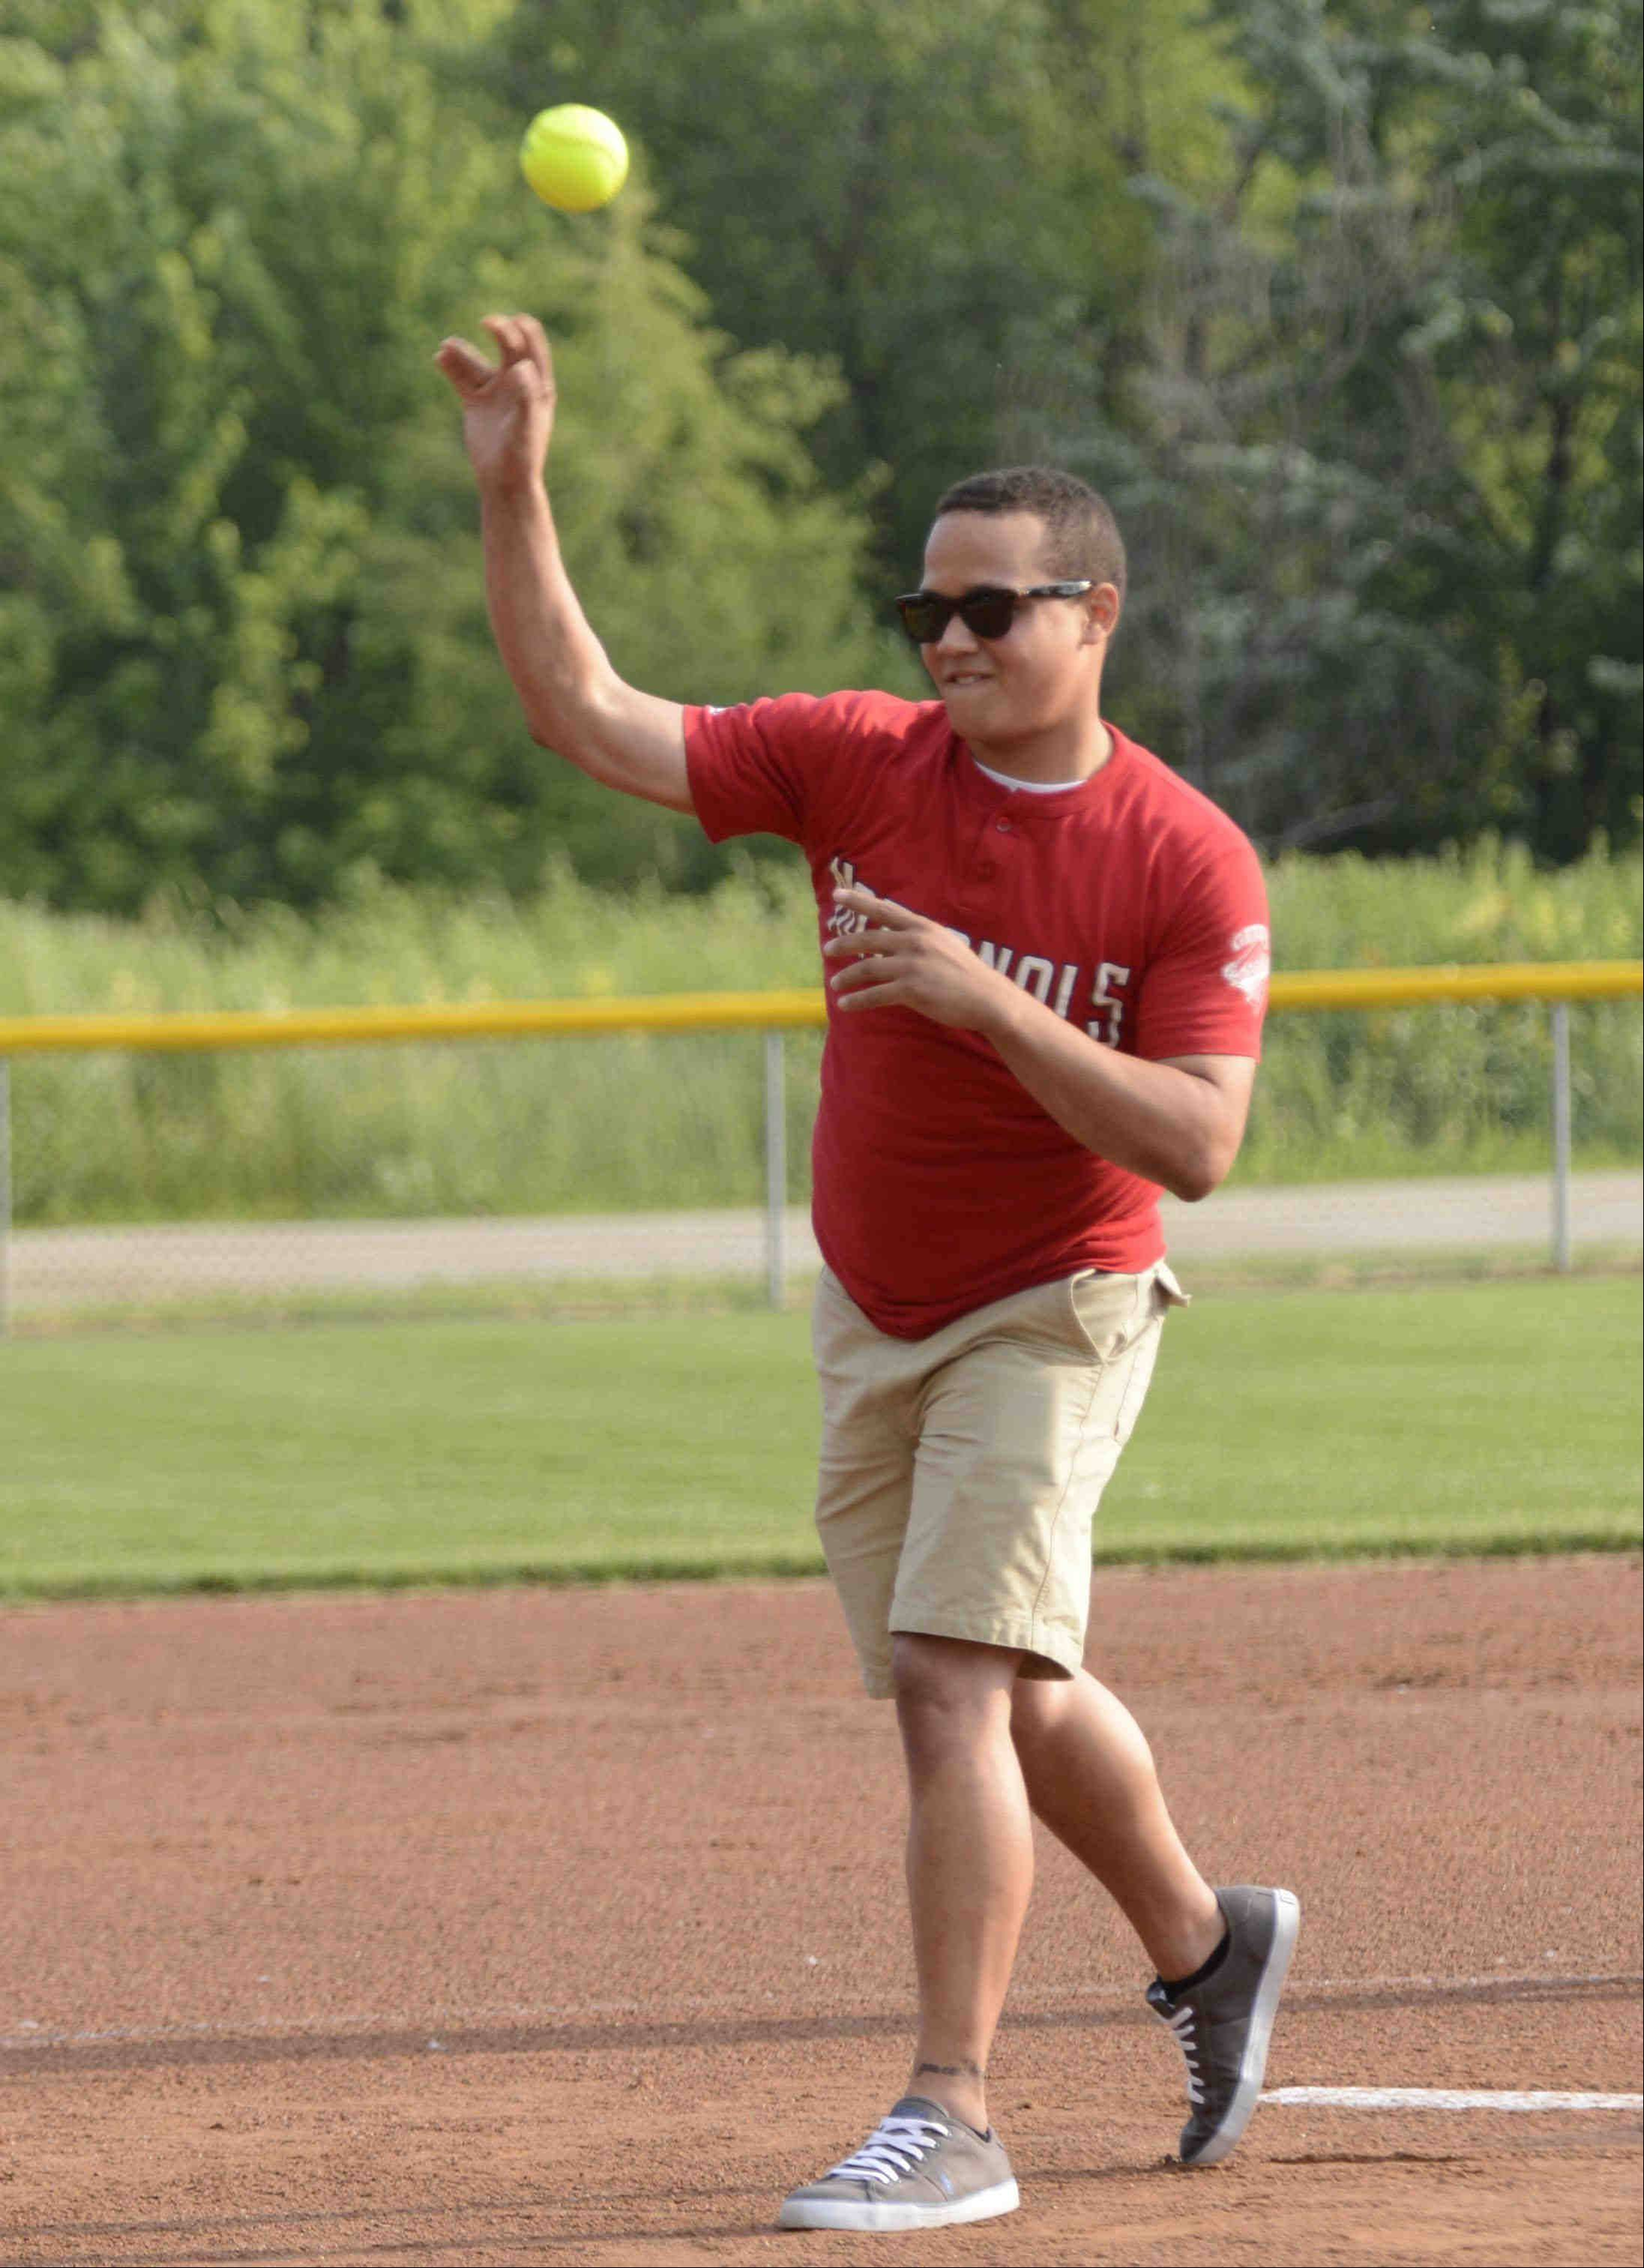 Christopher Fehlman throws the ceremonial first pitch Monday during the Tenth Annual Fehlman Memorial Senior All-Star softball game at Judson University. The game, which ended in a 4-4 tie, is named in memory of Christoper's father, Dave, who passed away in 2007, and Robbie Fehlman, Christoper's brother, who was killed by a motorist late last summer.